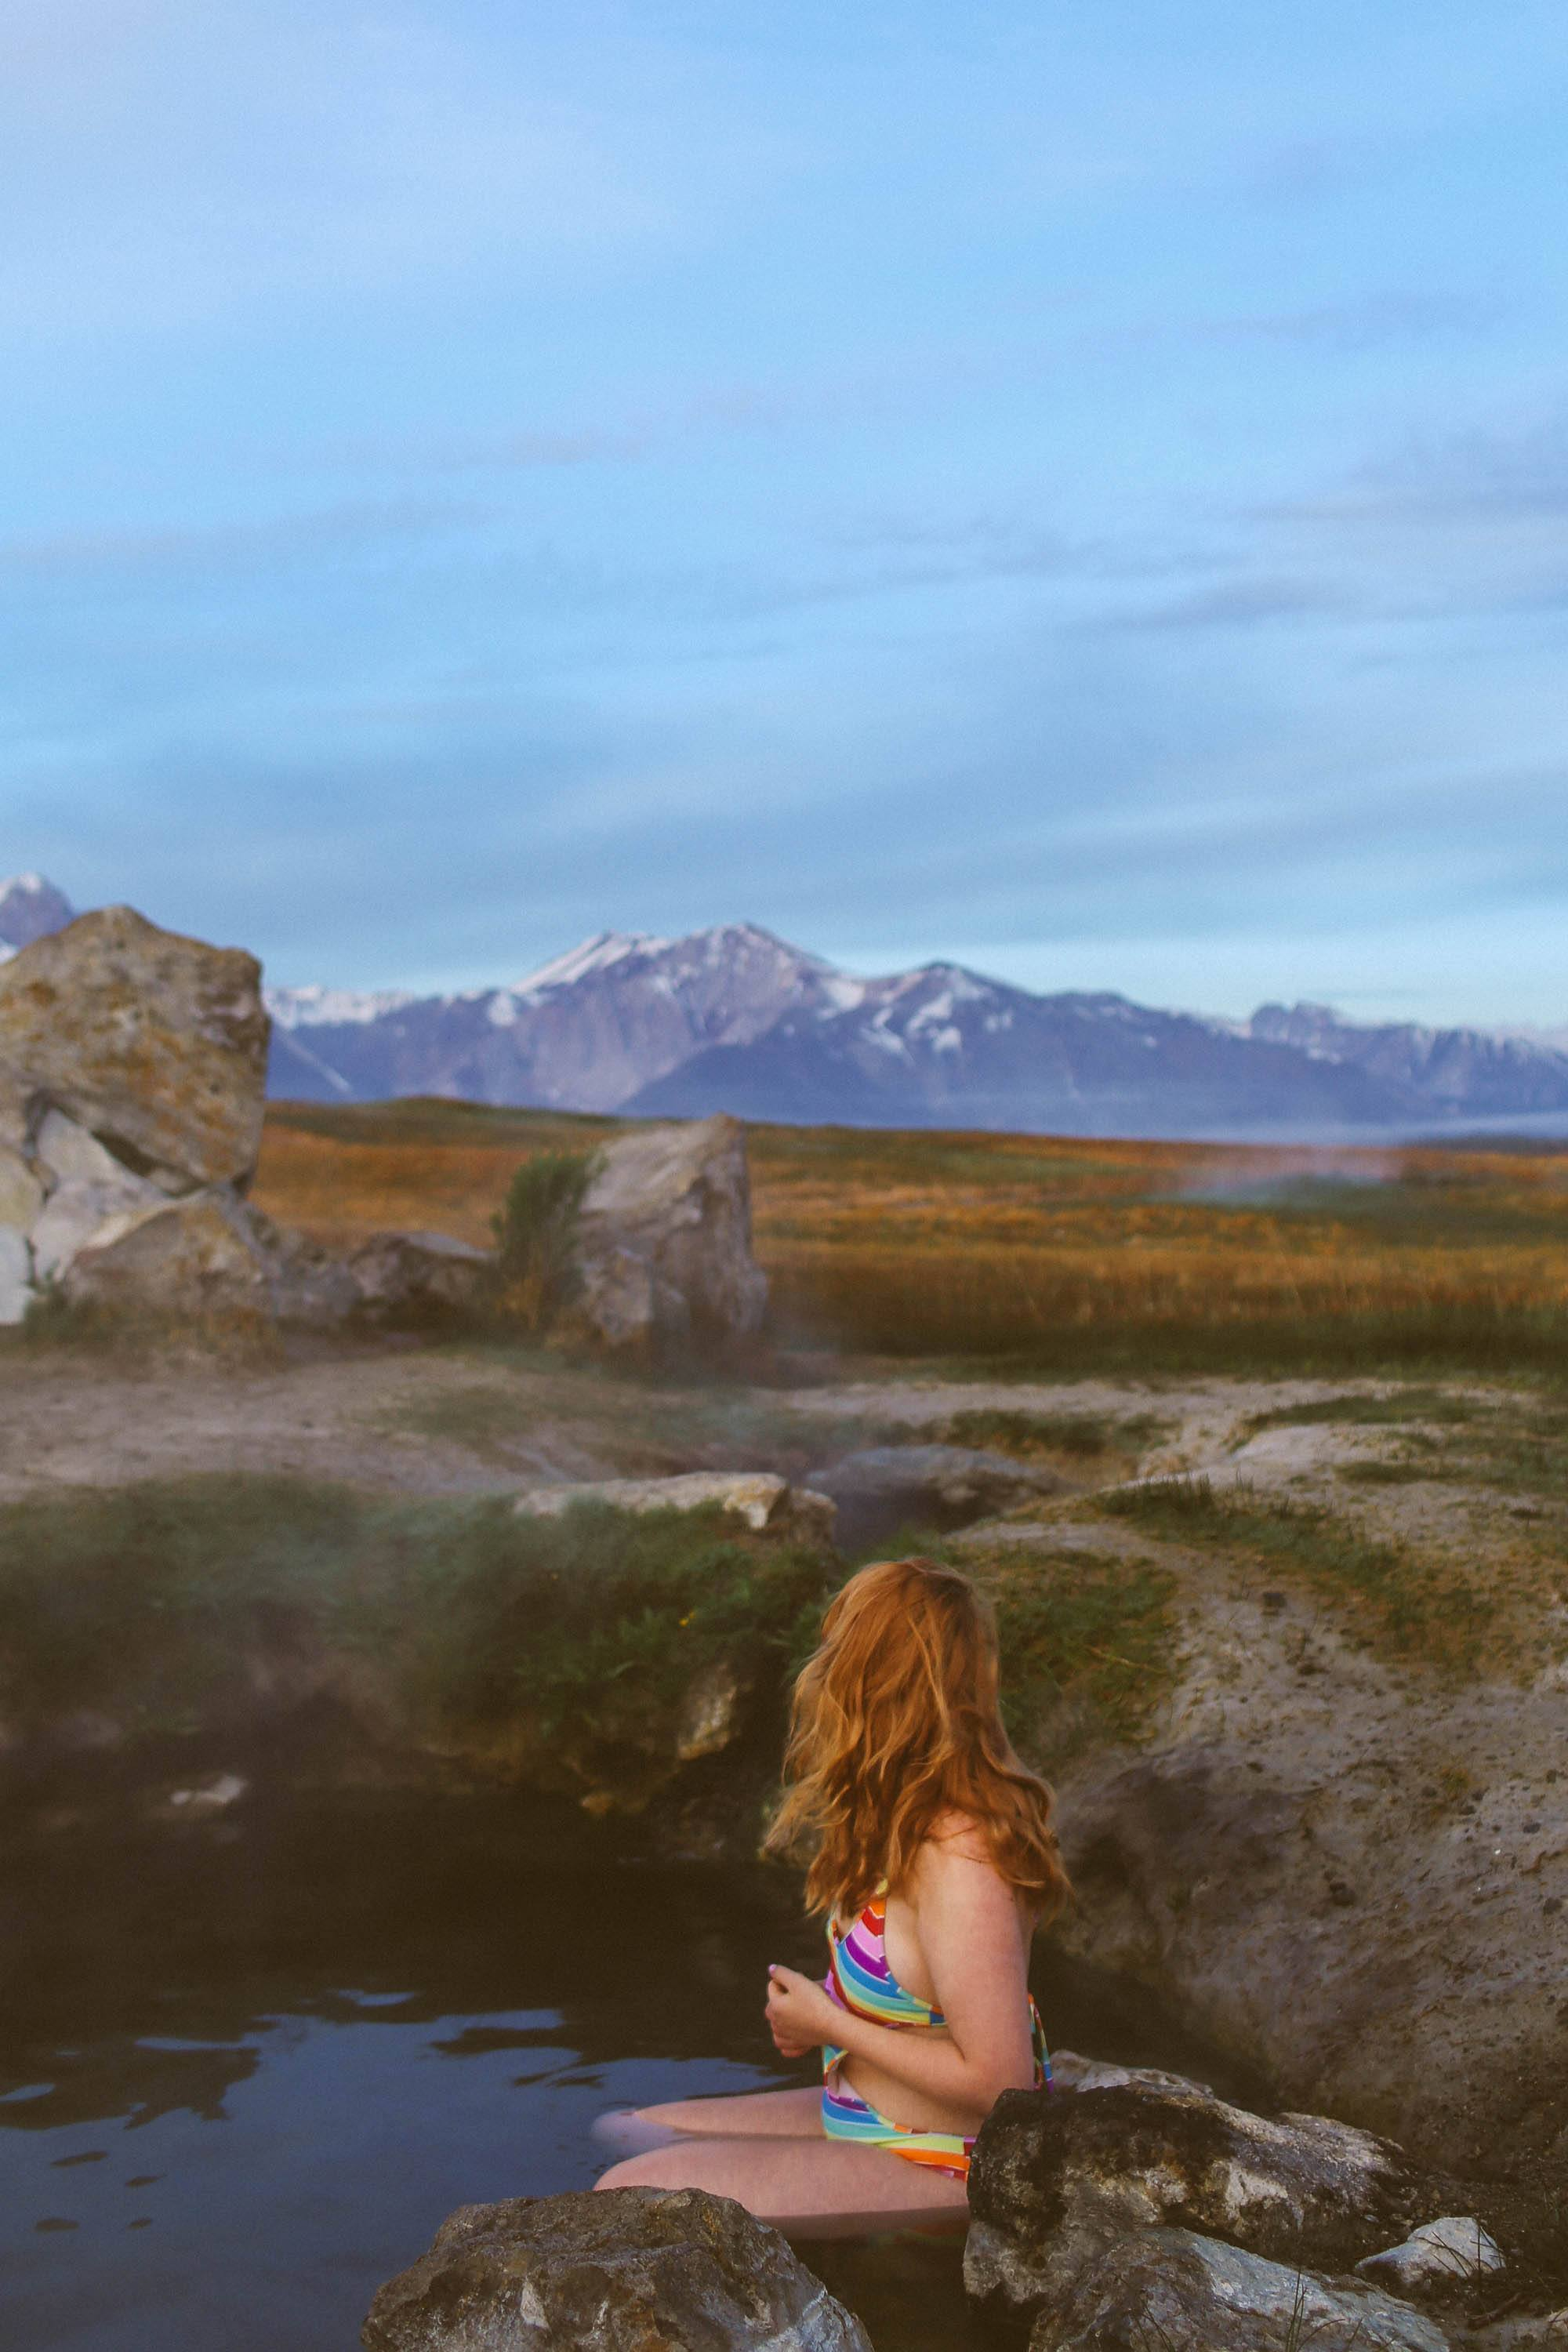 Woman in rainbow swimsuit sitting in a hot spring with mountains in the background